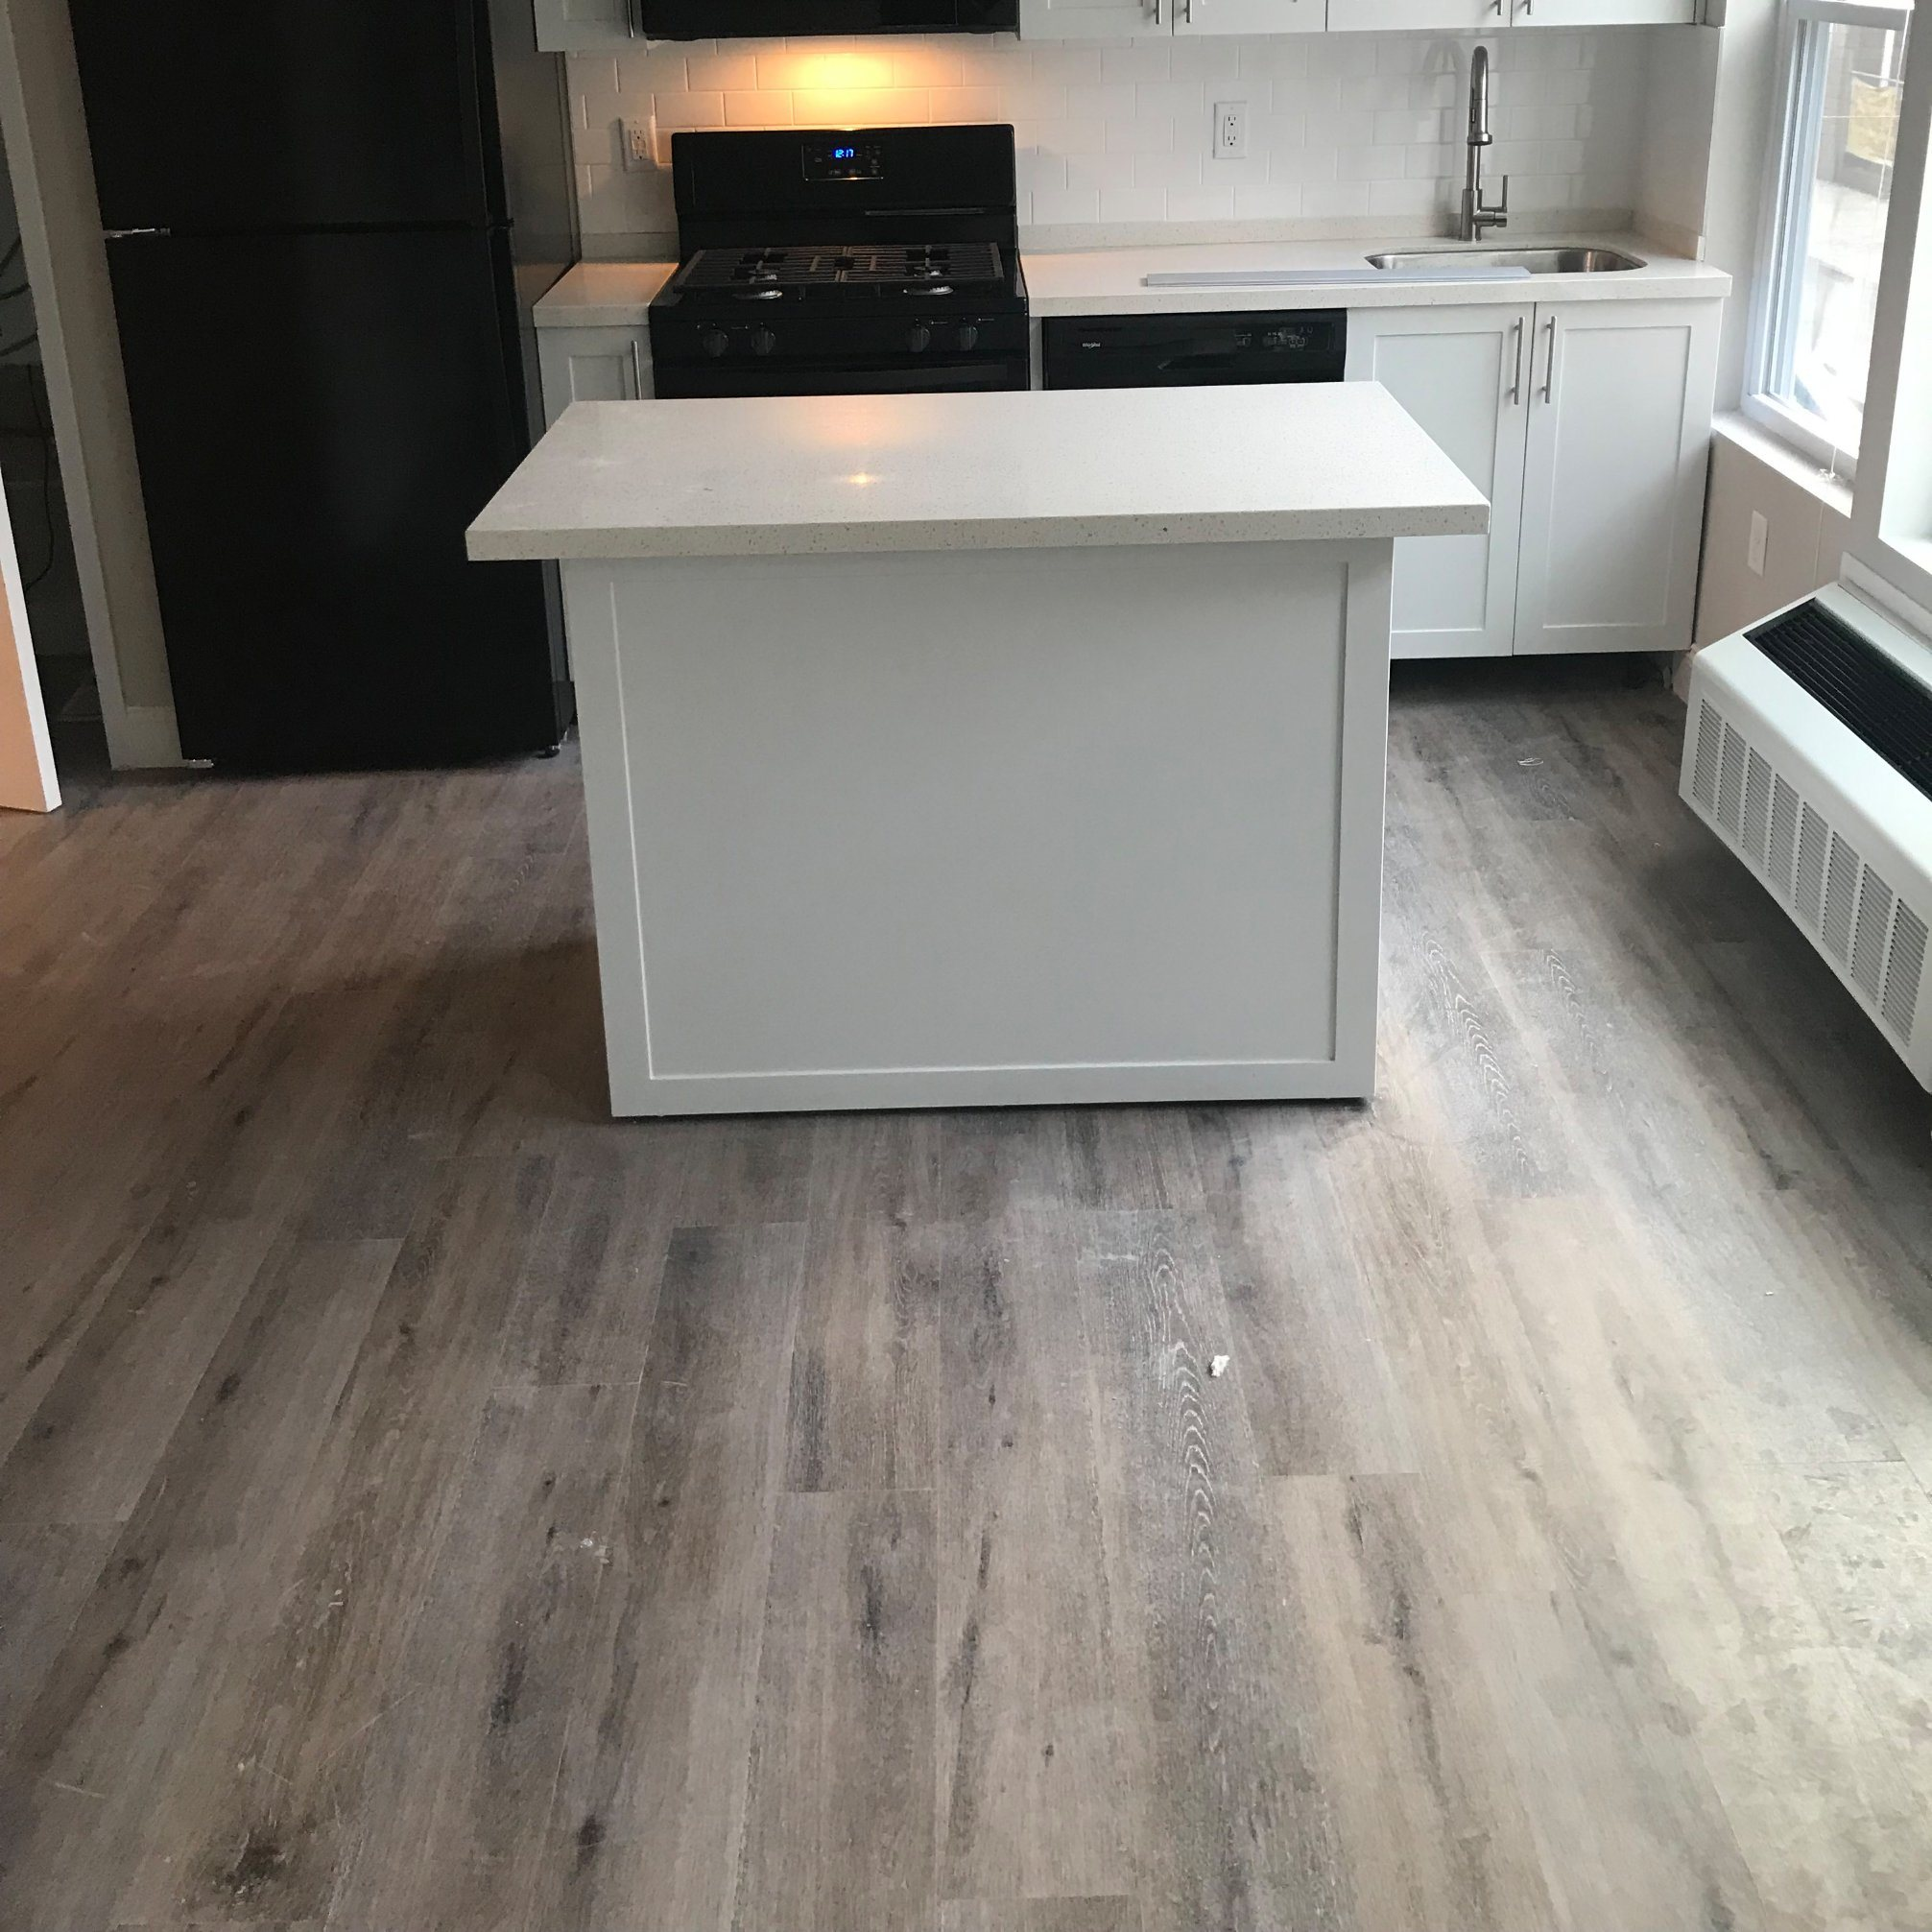 China Natural Looks Durable Hygienic, Is Vinyl Flooring Good For Kitchens